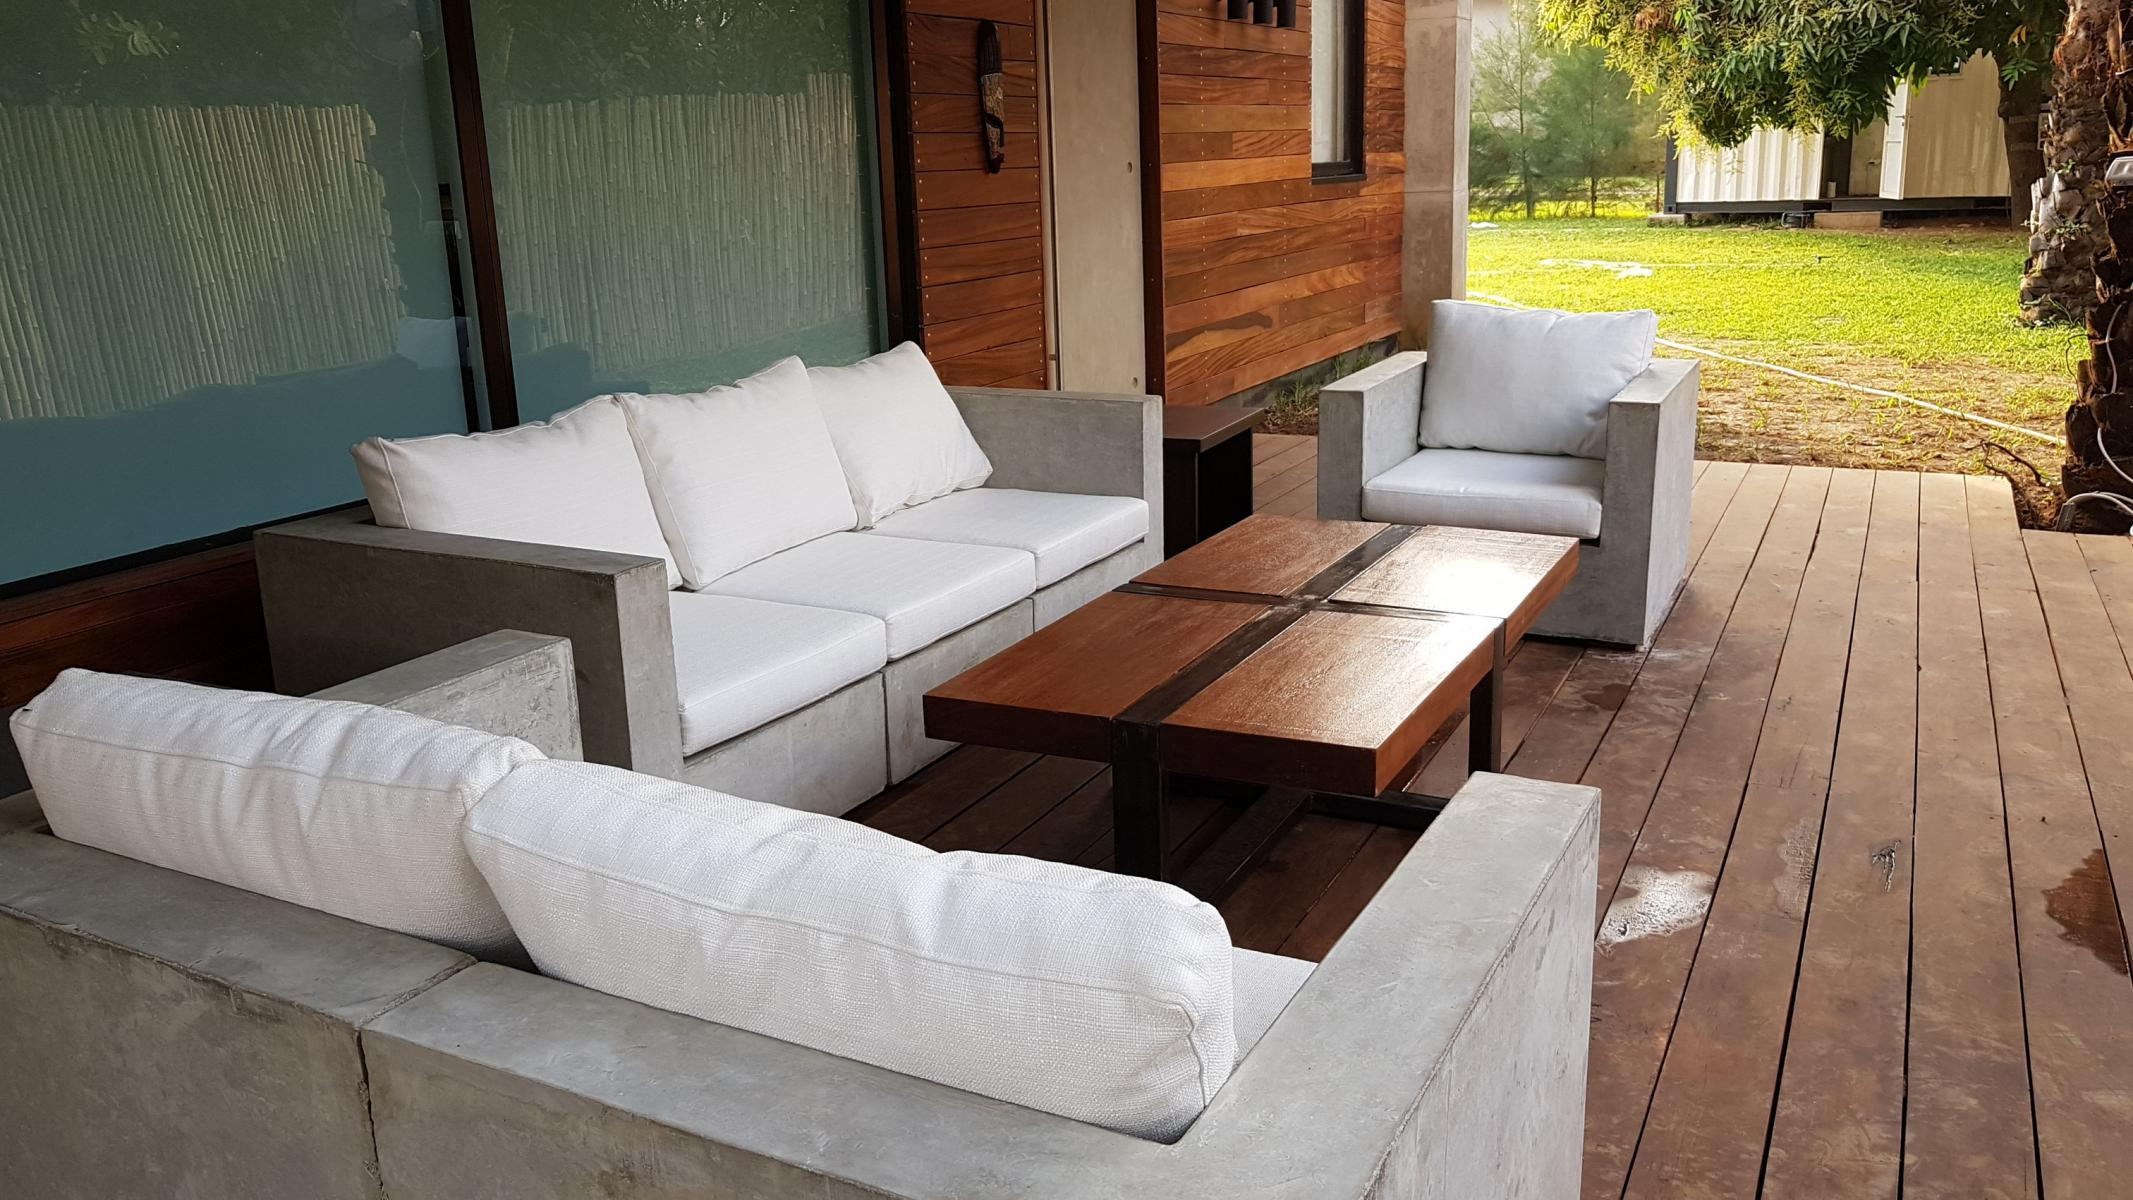 A residential project in Abuja built using shipping containers features an outdoor seating area.